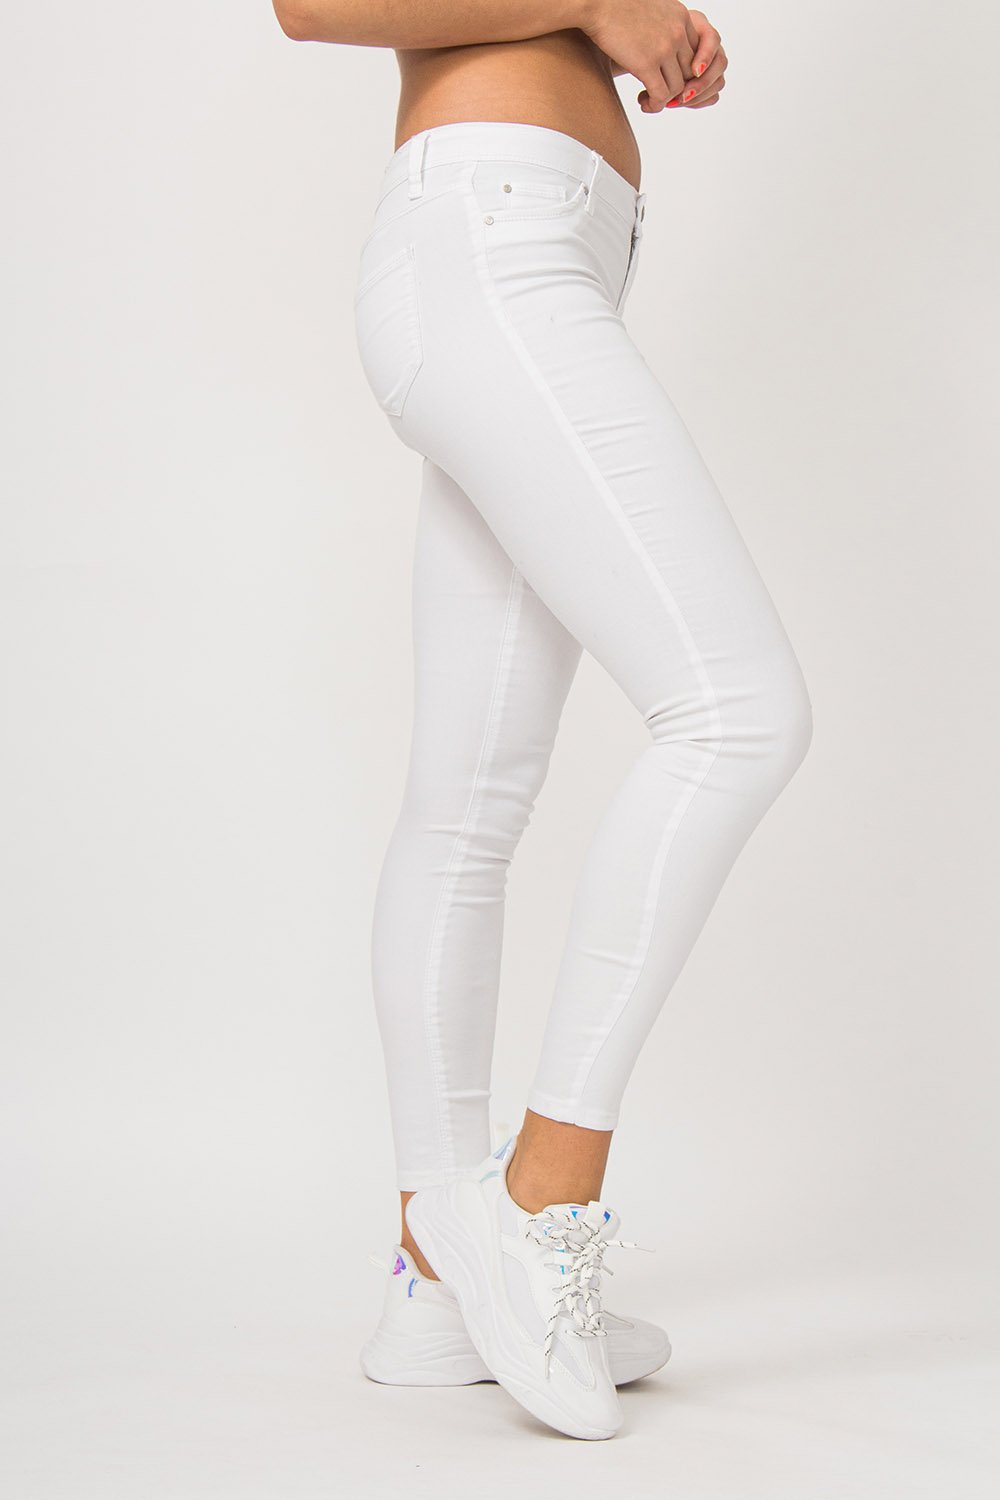 Jeans Taya - The Fashionboutique - Colloseum